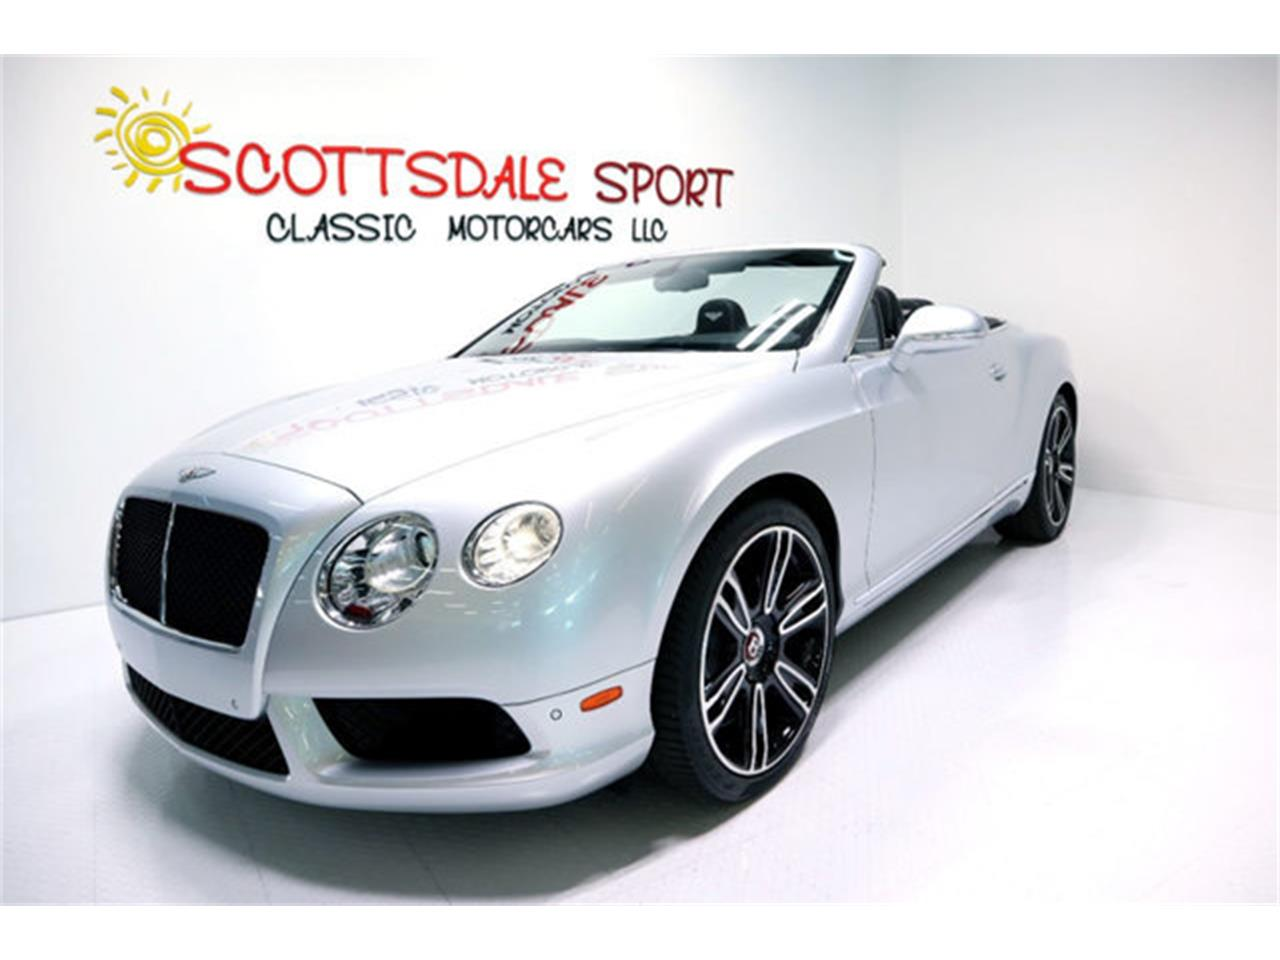 2014 Bentley Continental GTC V8 (CC-1304158) for sale in Scottsdale, Arizona